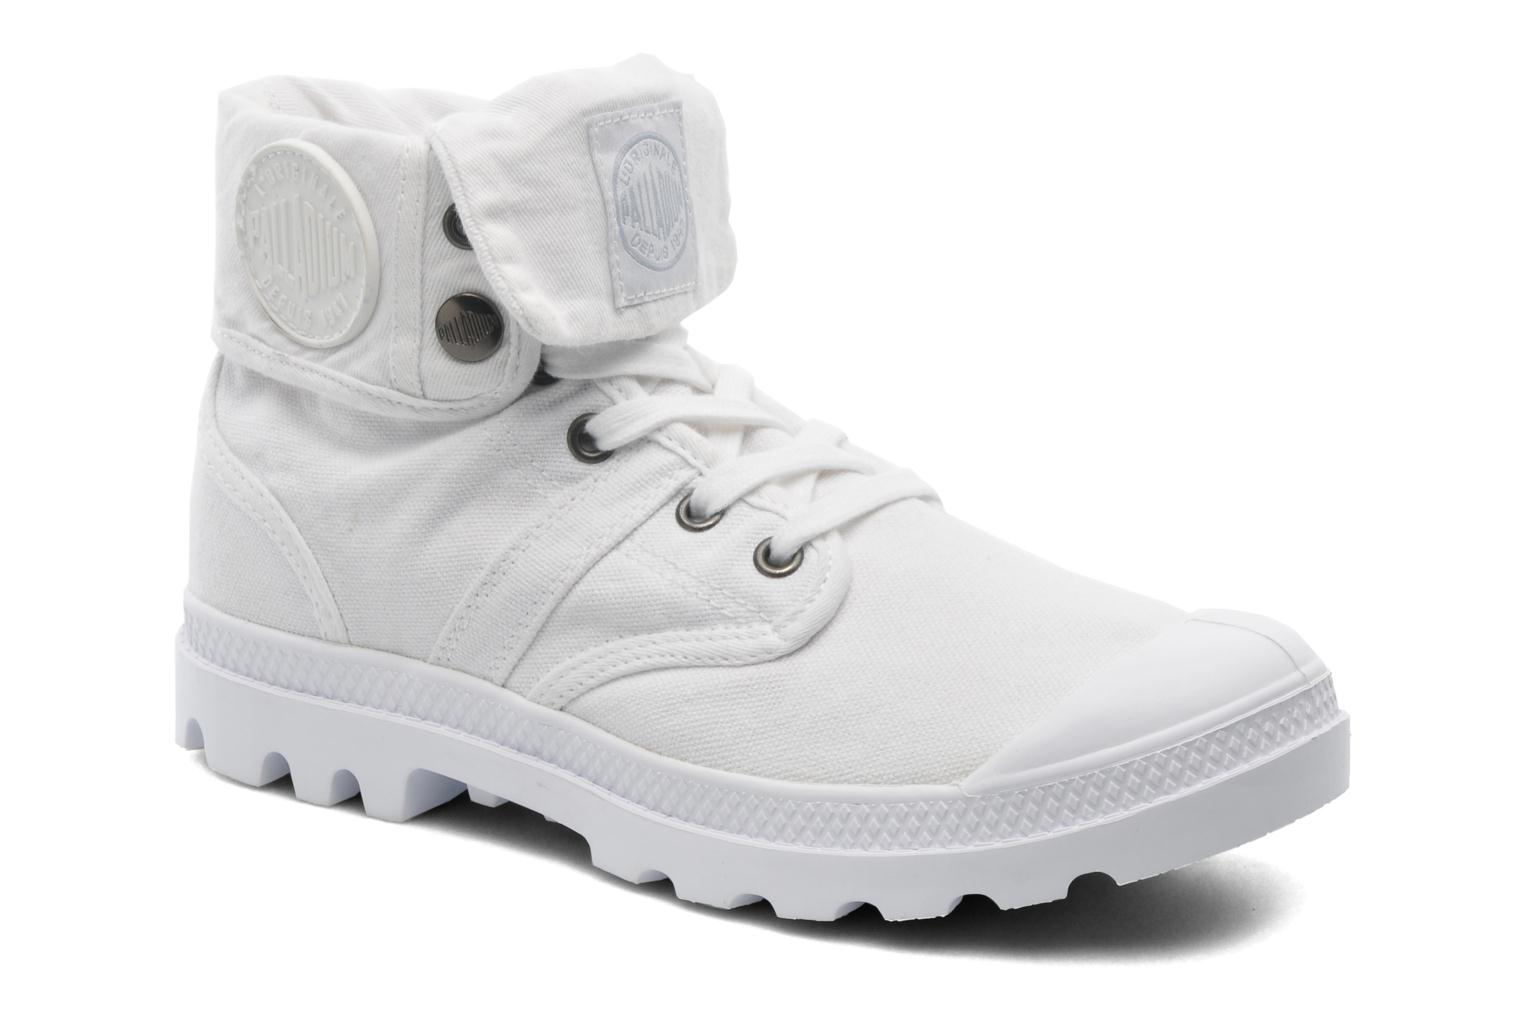 Baskets Palladium Baggy CVS f Blanc vue détail/paire